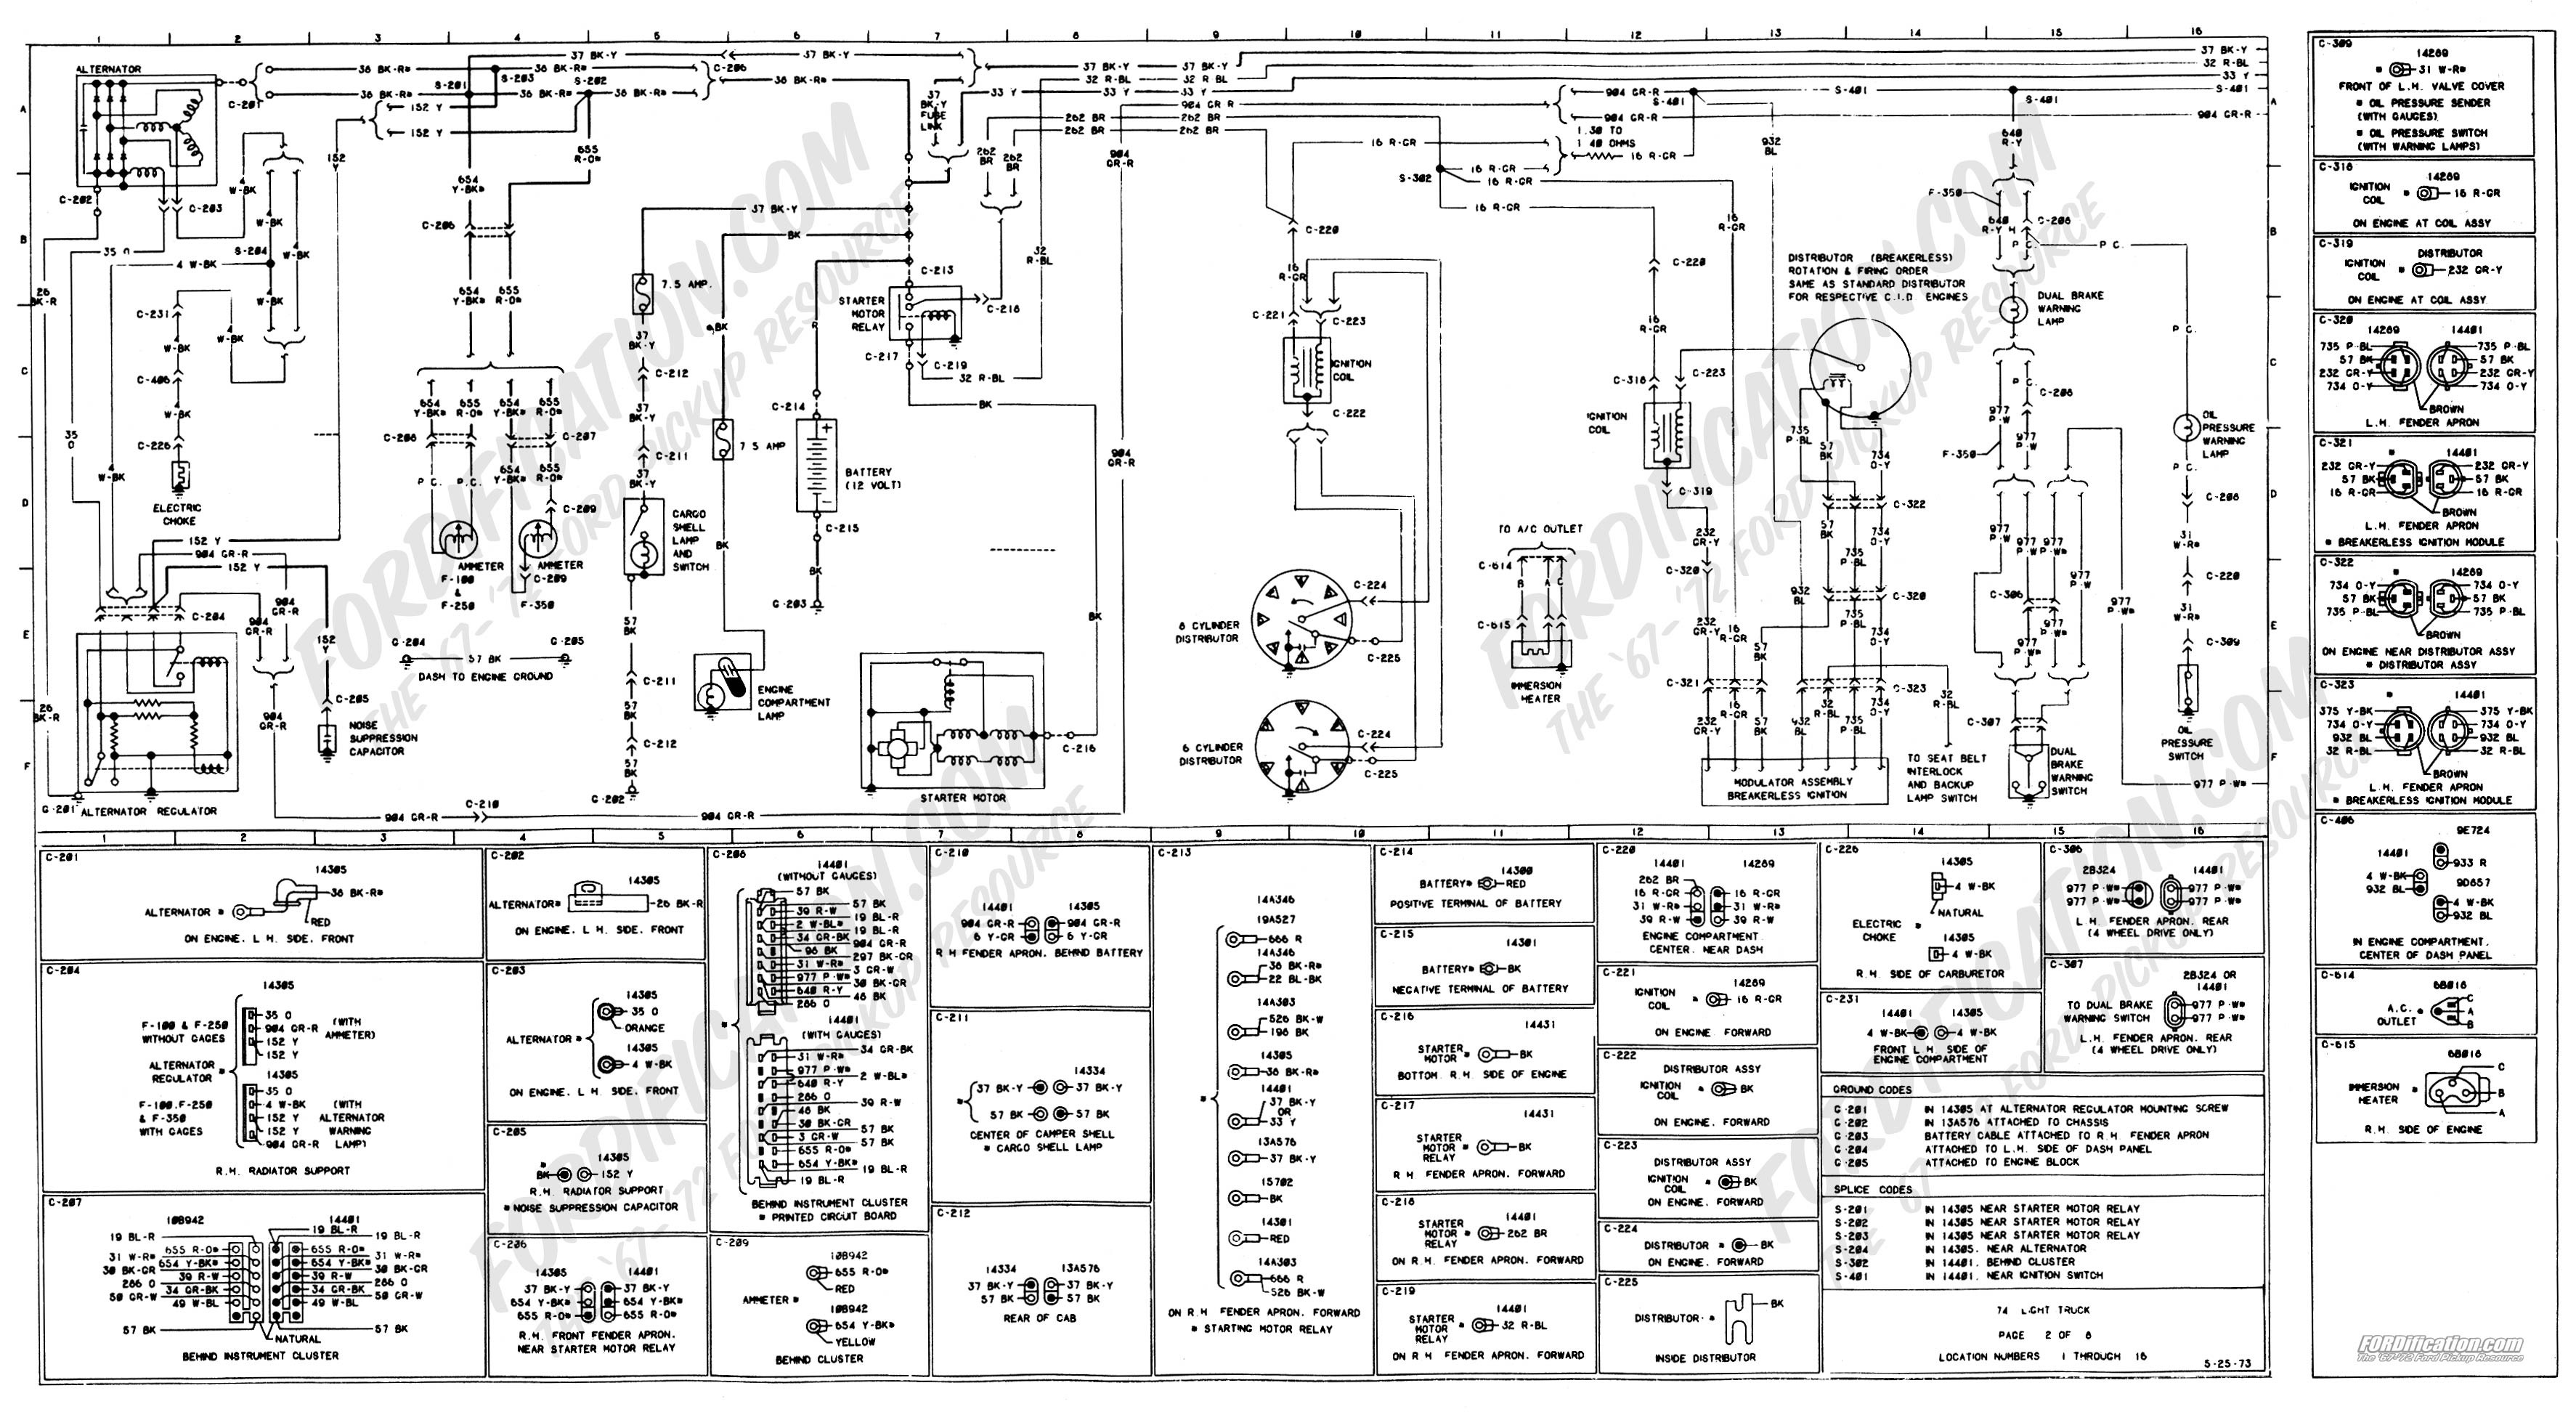 Watch moreover Watch further 1998 Ford F 350 Superduty Fuse Box Diagram further 2006 12 07 214144 A C  pressor 97 Ranger 2 3 To 1997 Ford Explorer Wiring Diagram further 7j5q4 Ford F350 1996 Ford Truck Its F350 One Ton Dual. on 2003 ford f350 fuse panel diagram